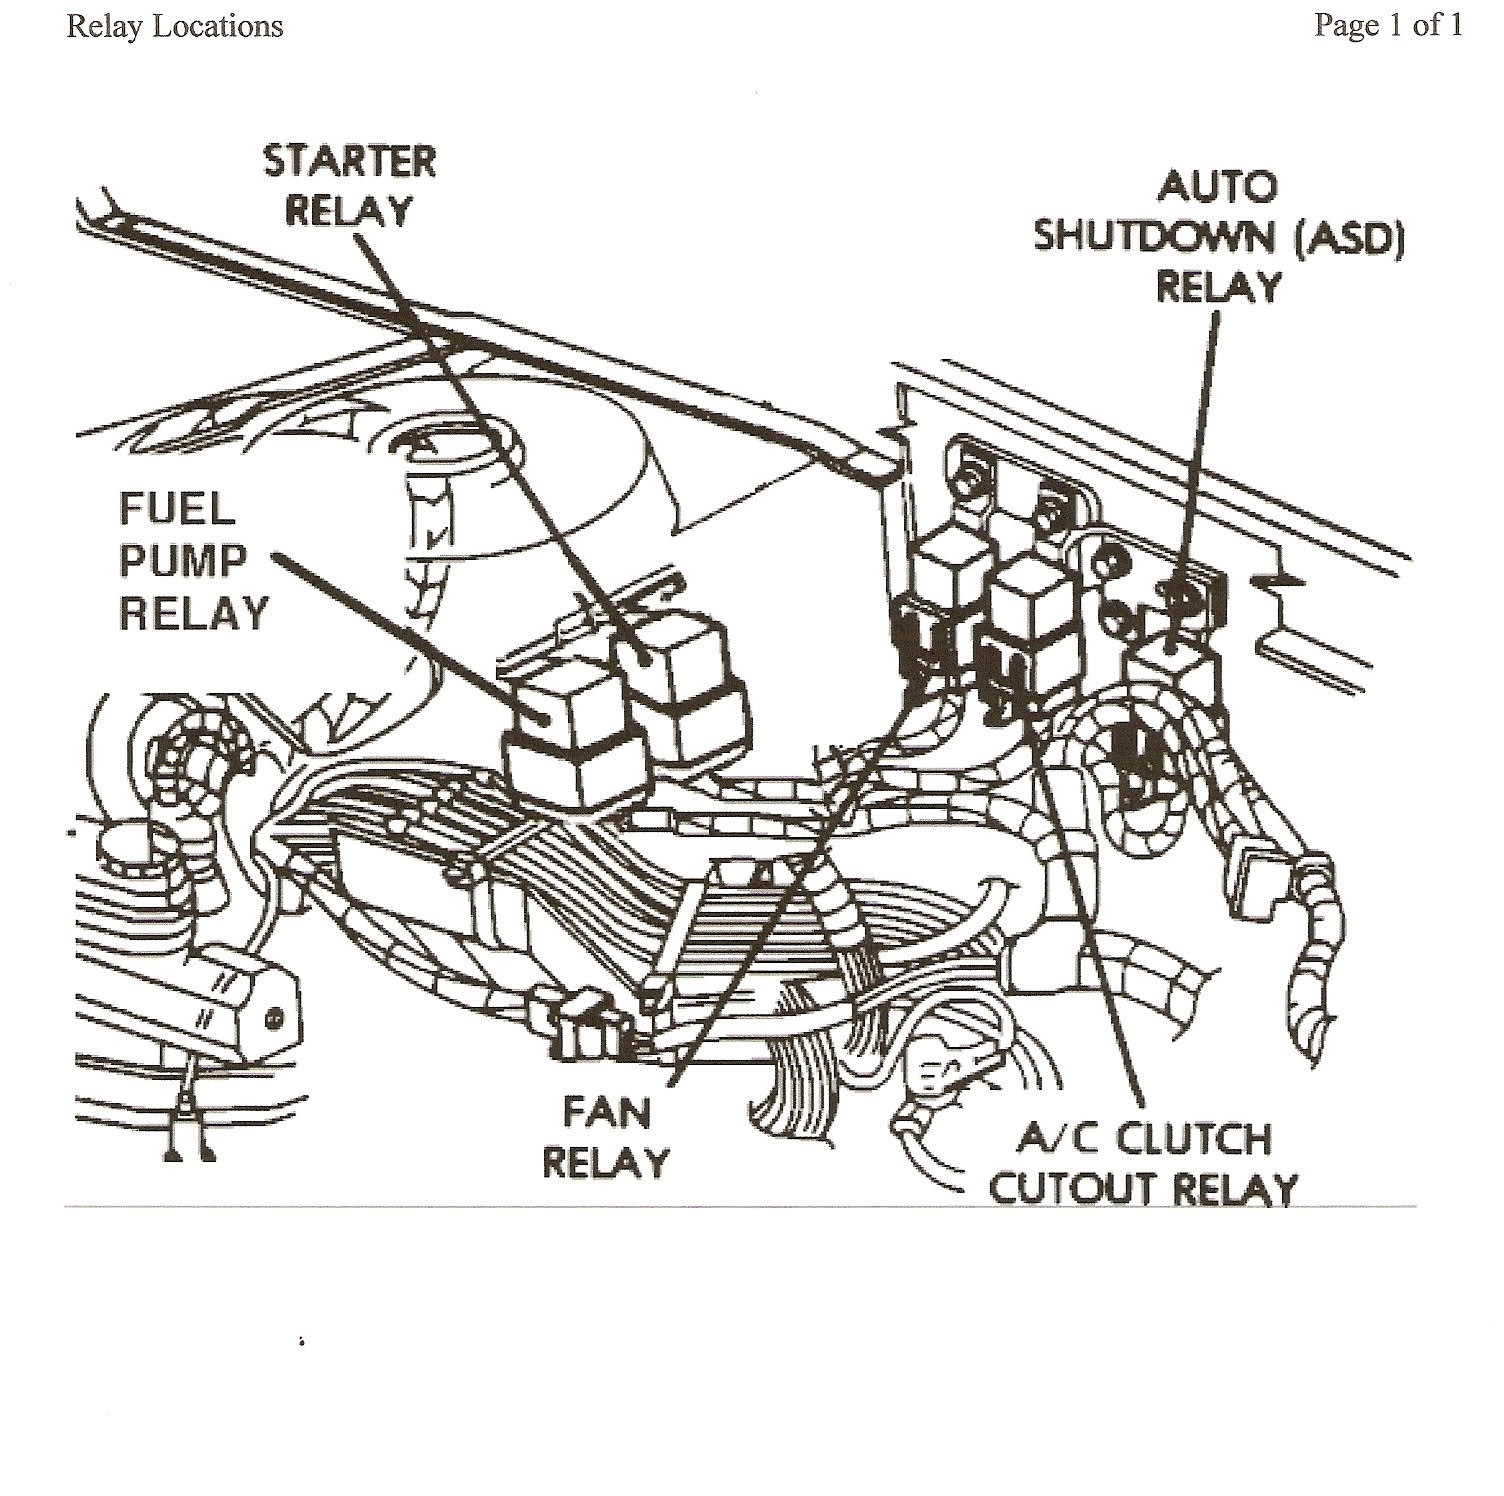 2006 Chrysler 300c Wiring Diagram